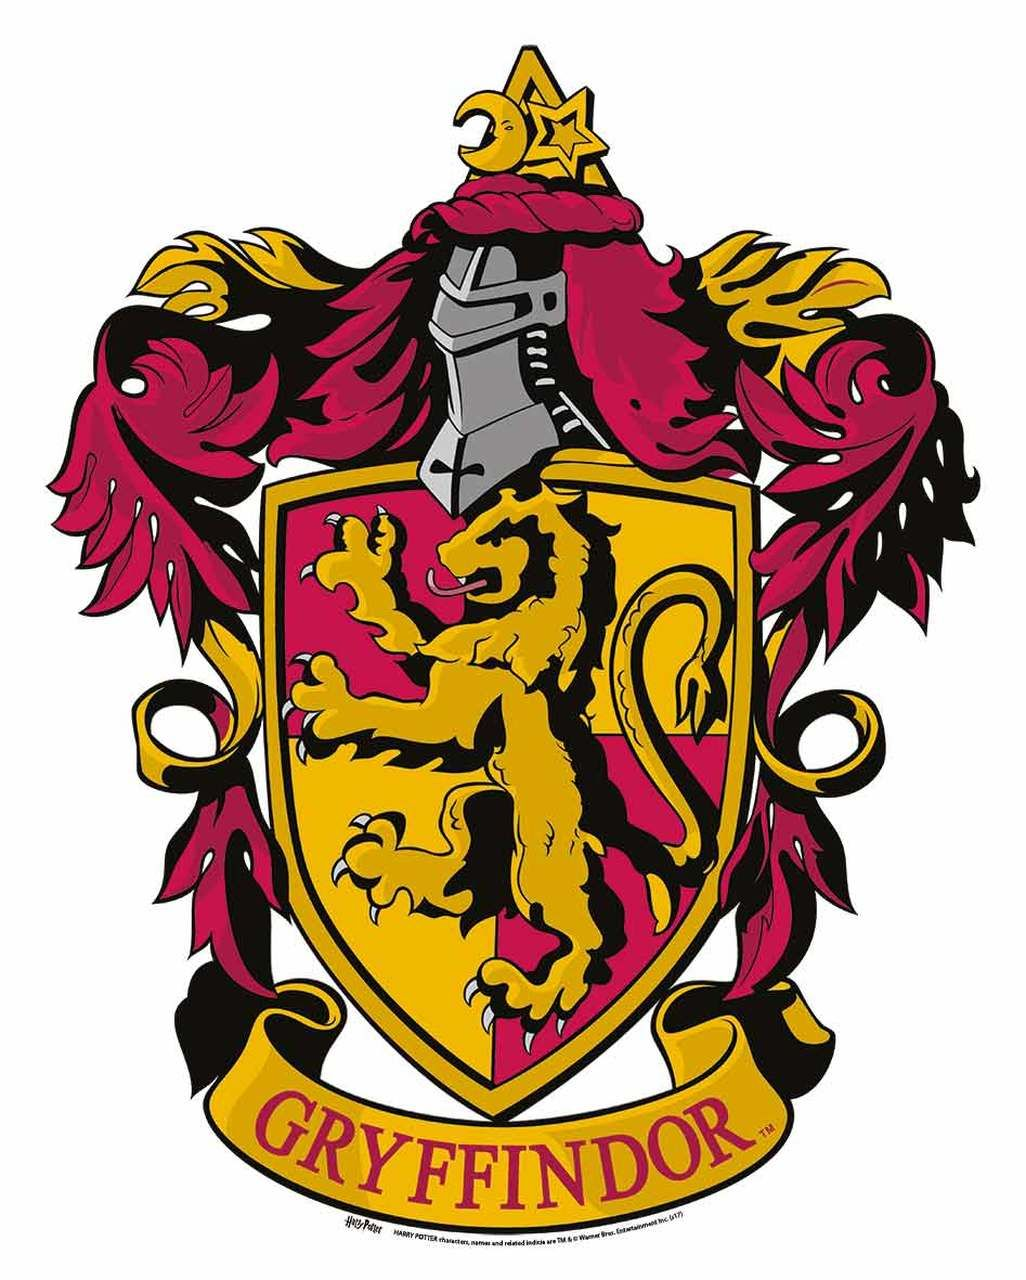 Gryffindor Crest from Harry Potter Wall Mounted Official Cardboard Cutout